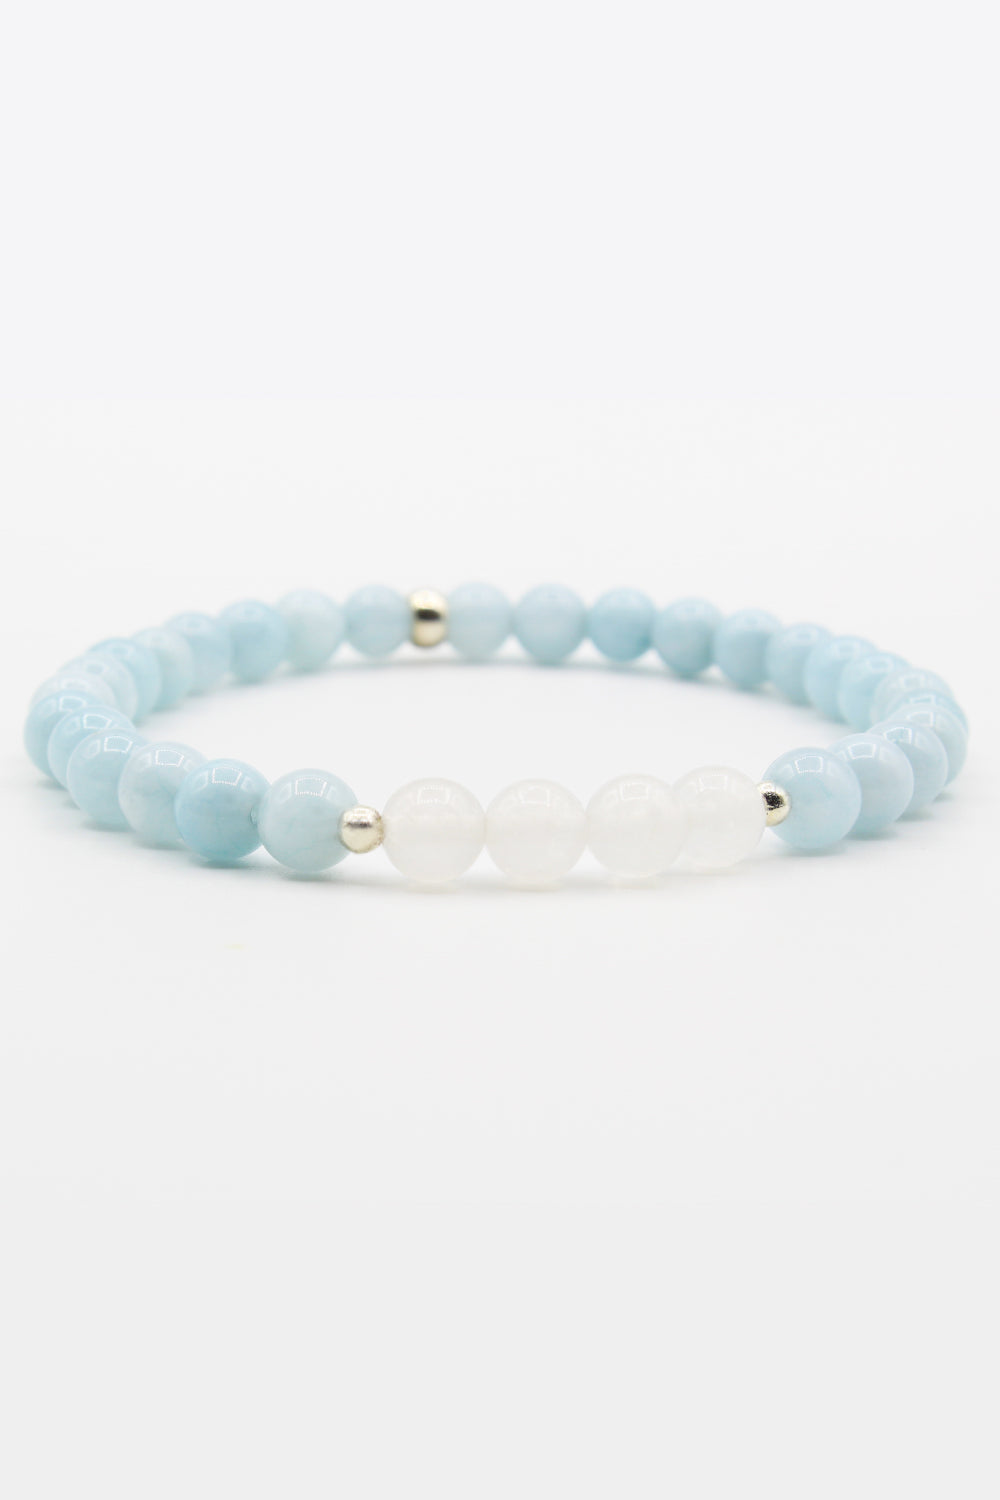 Aquamarine and Quartz Mala Bracelet